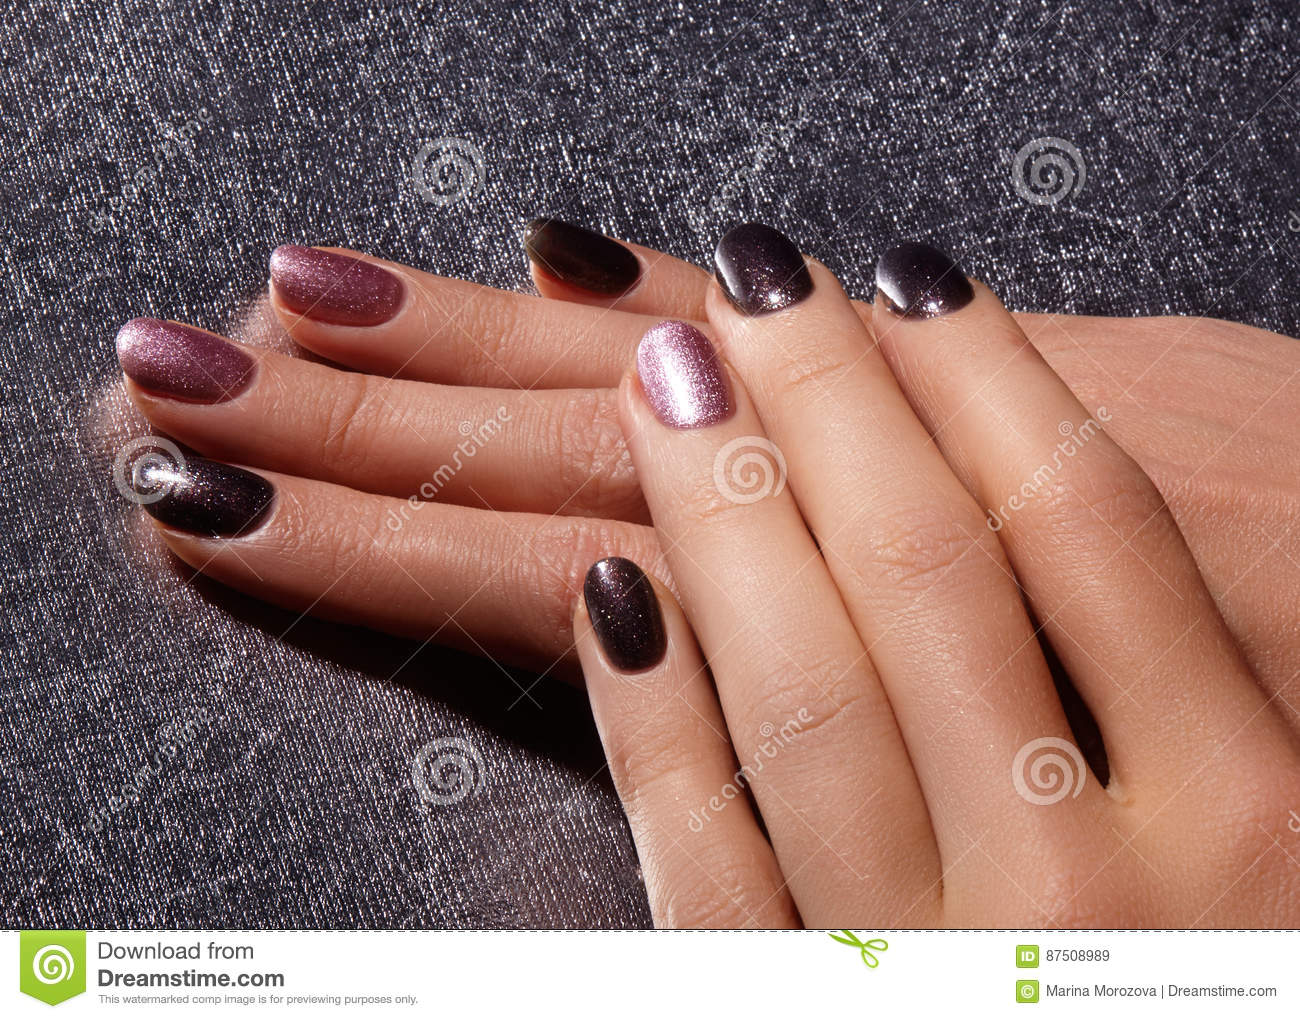 Bright Pink And Black Nail Polish Wit Sparkles Manicured Nails With Shiny Manicure Gel Nailpolish Fashion Art